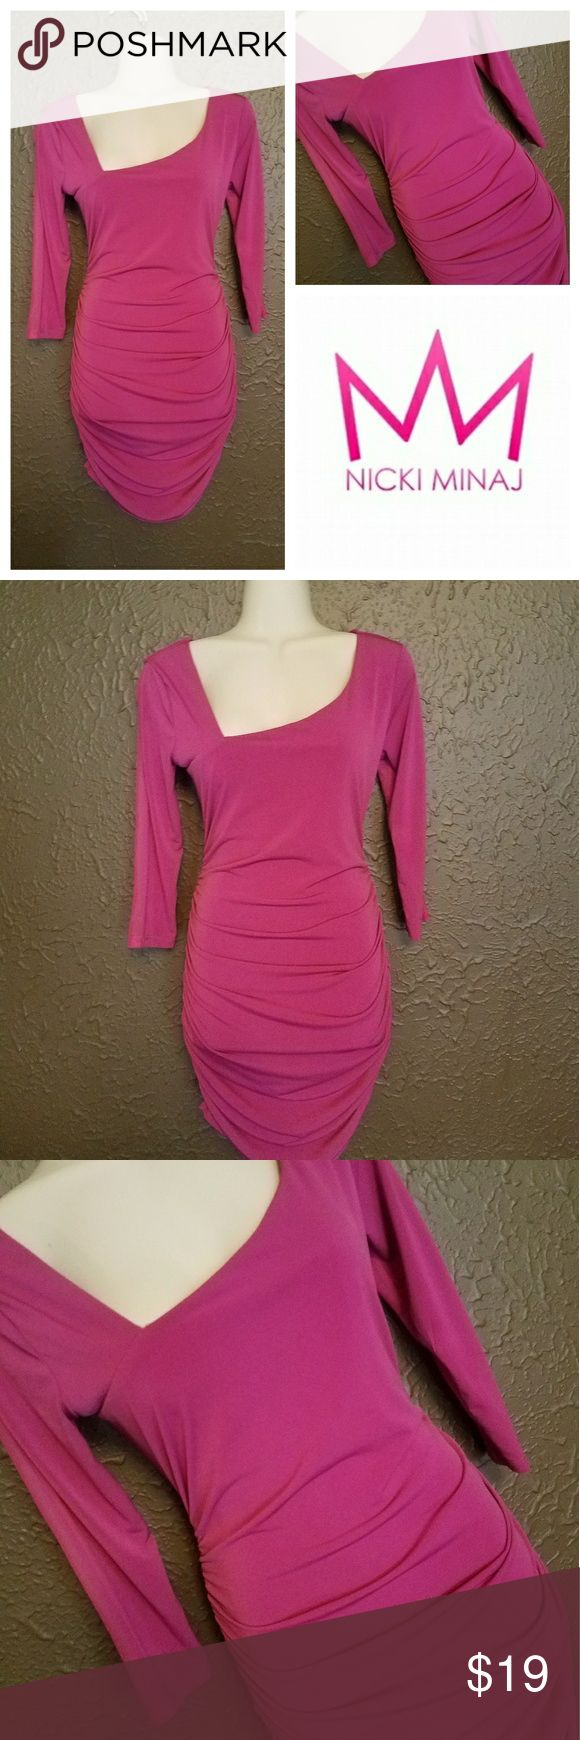 NWT | Nicki Minaj | M | Fuschia Dress Sheer panel on back and part of arms (shown in photo). New w/ tags. Fuschia Dress w/ plenty of stretch. Nicki Minaj Dresses